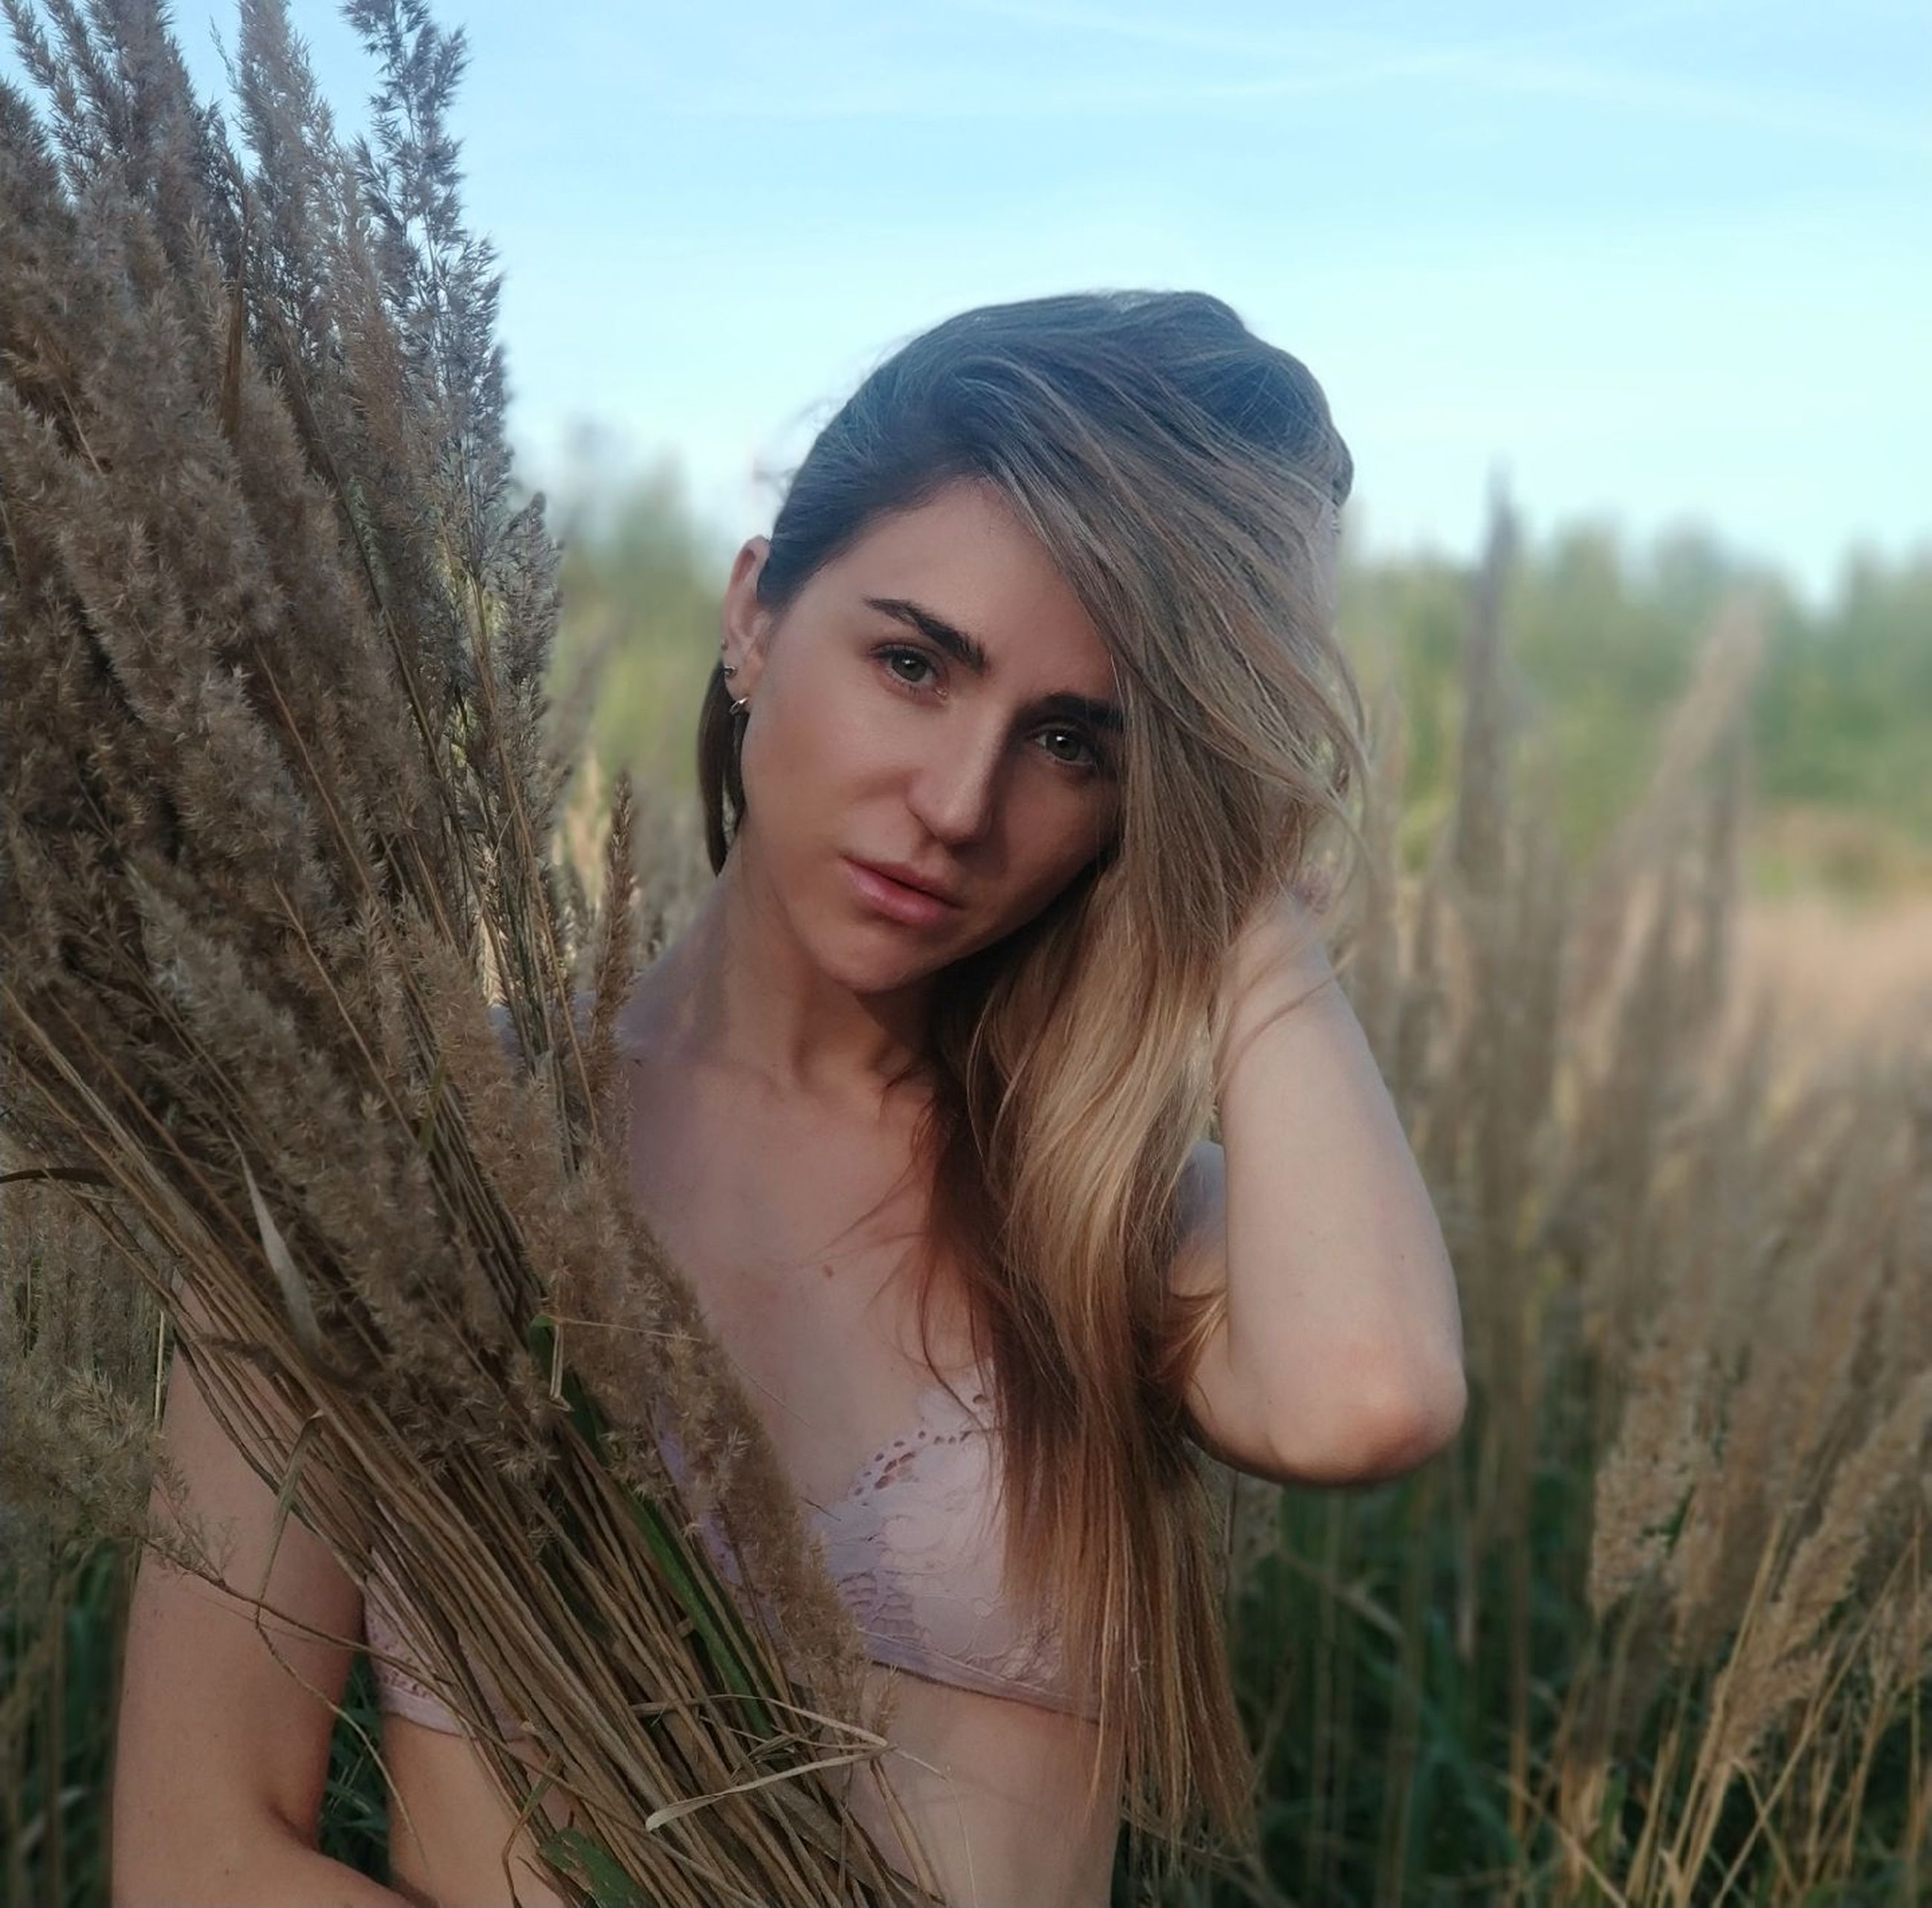 young adult, looking at camera, young women, portrait, one person, long hair, plant, hair, beautiful woman, beauty, real people, leisure activity, land, women, hairstyle, field, lifestyles, adult, nature, outdoors, fashion